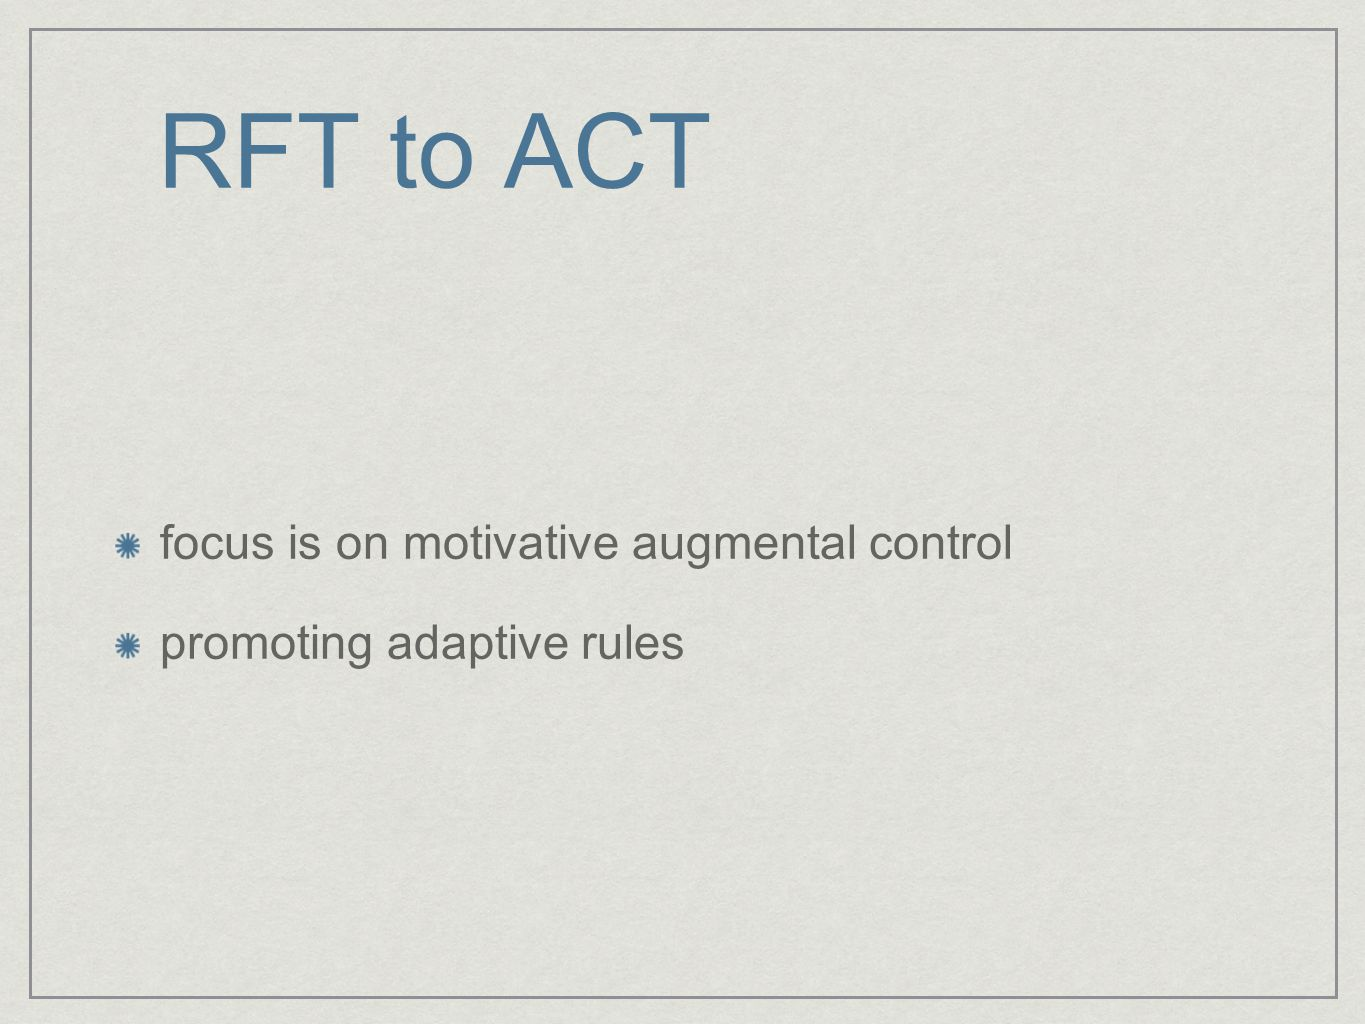 RFT to ACT focus is on motivative augmental control promoting adaptive rules